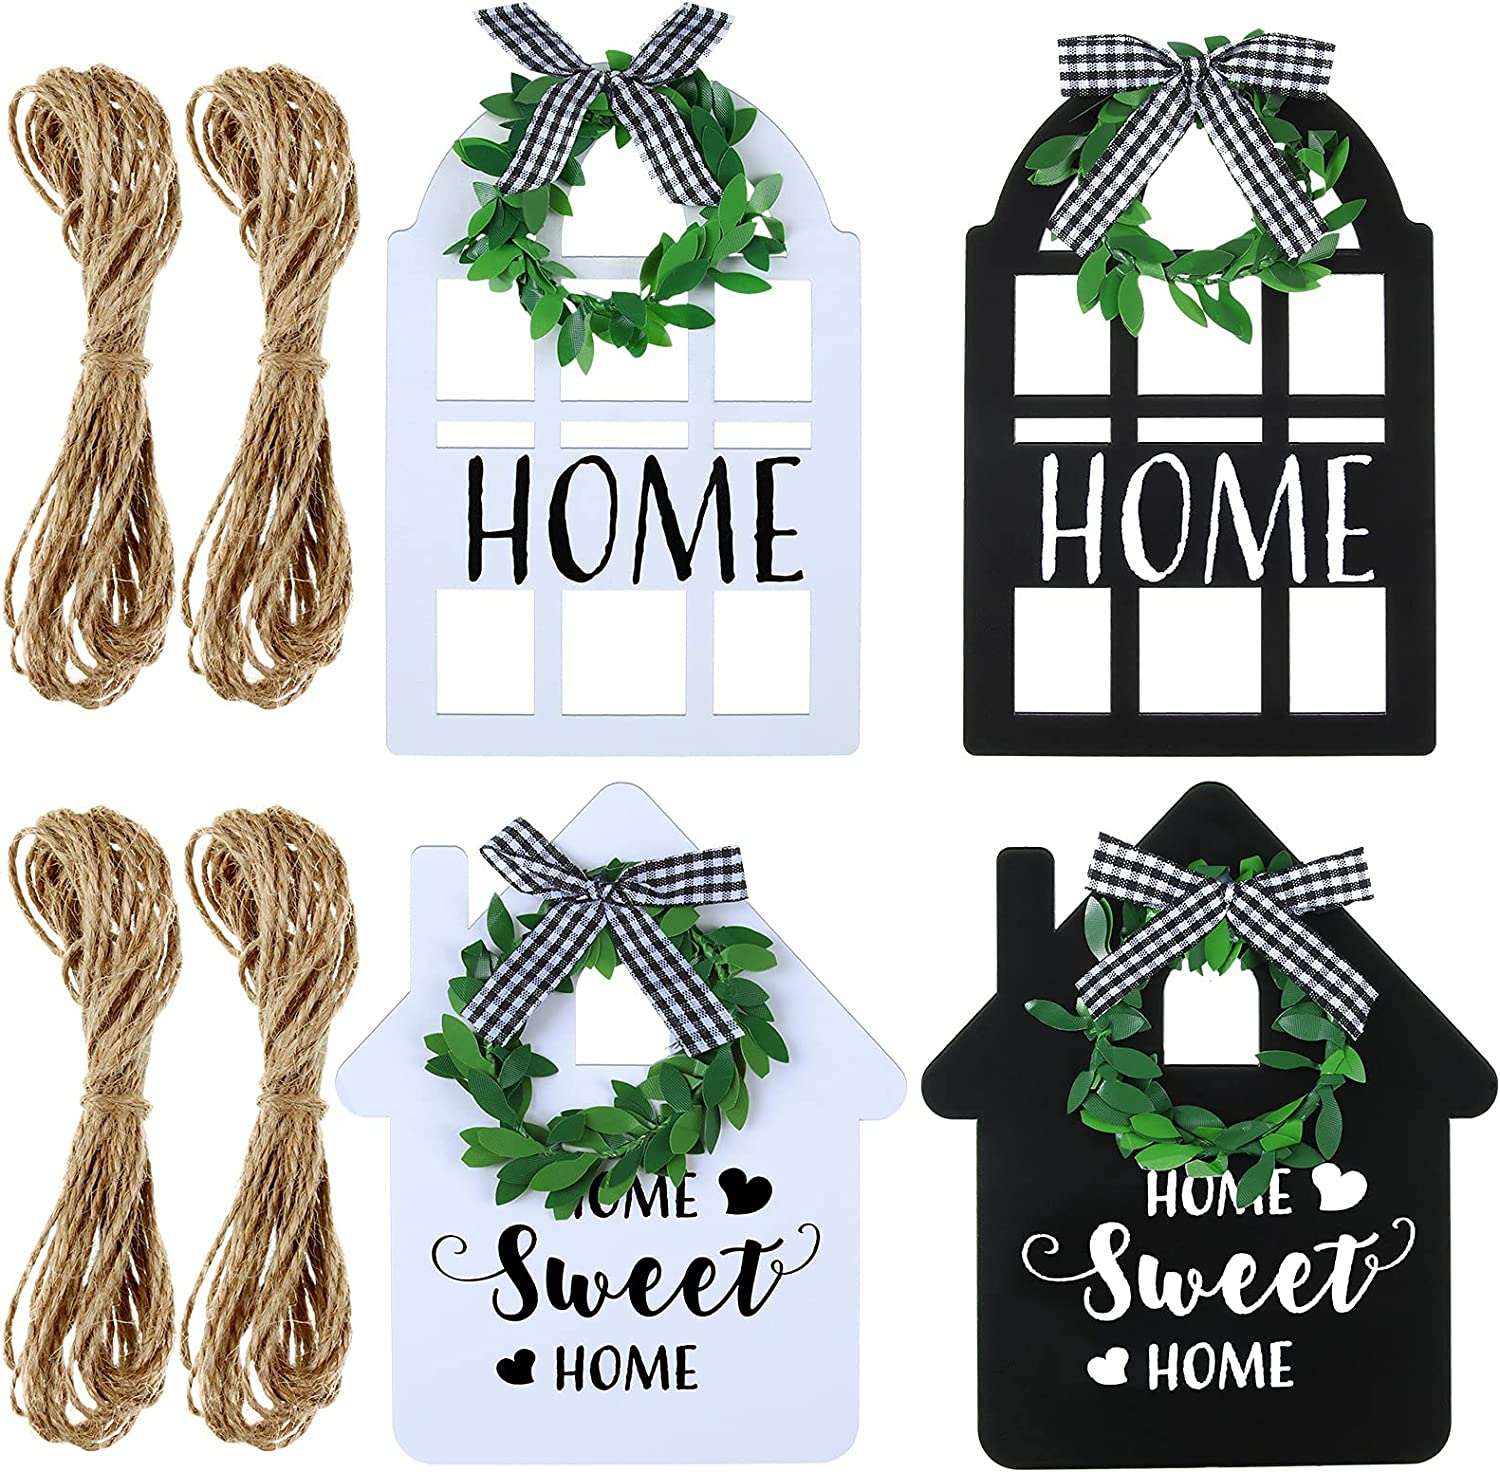 4 Pieces Wooden mart Farmhouse Window Decorations a Black Tray Detroit Mall Tiered